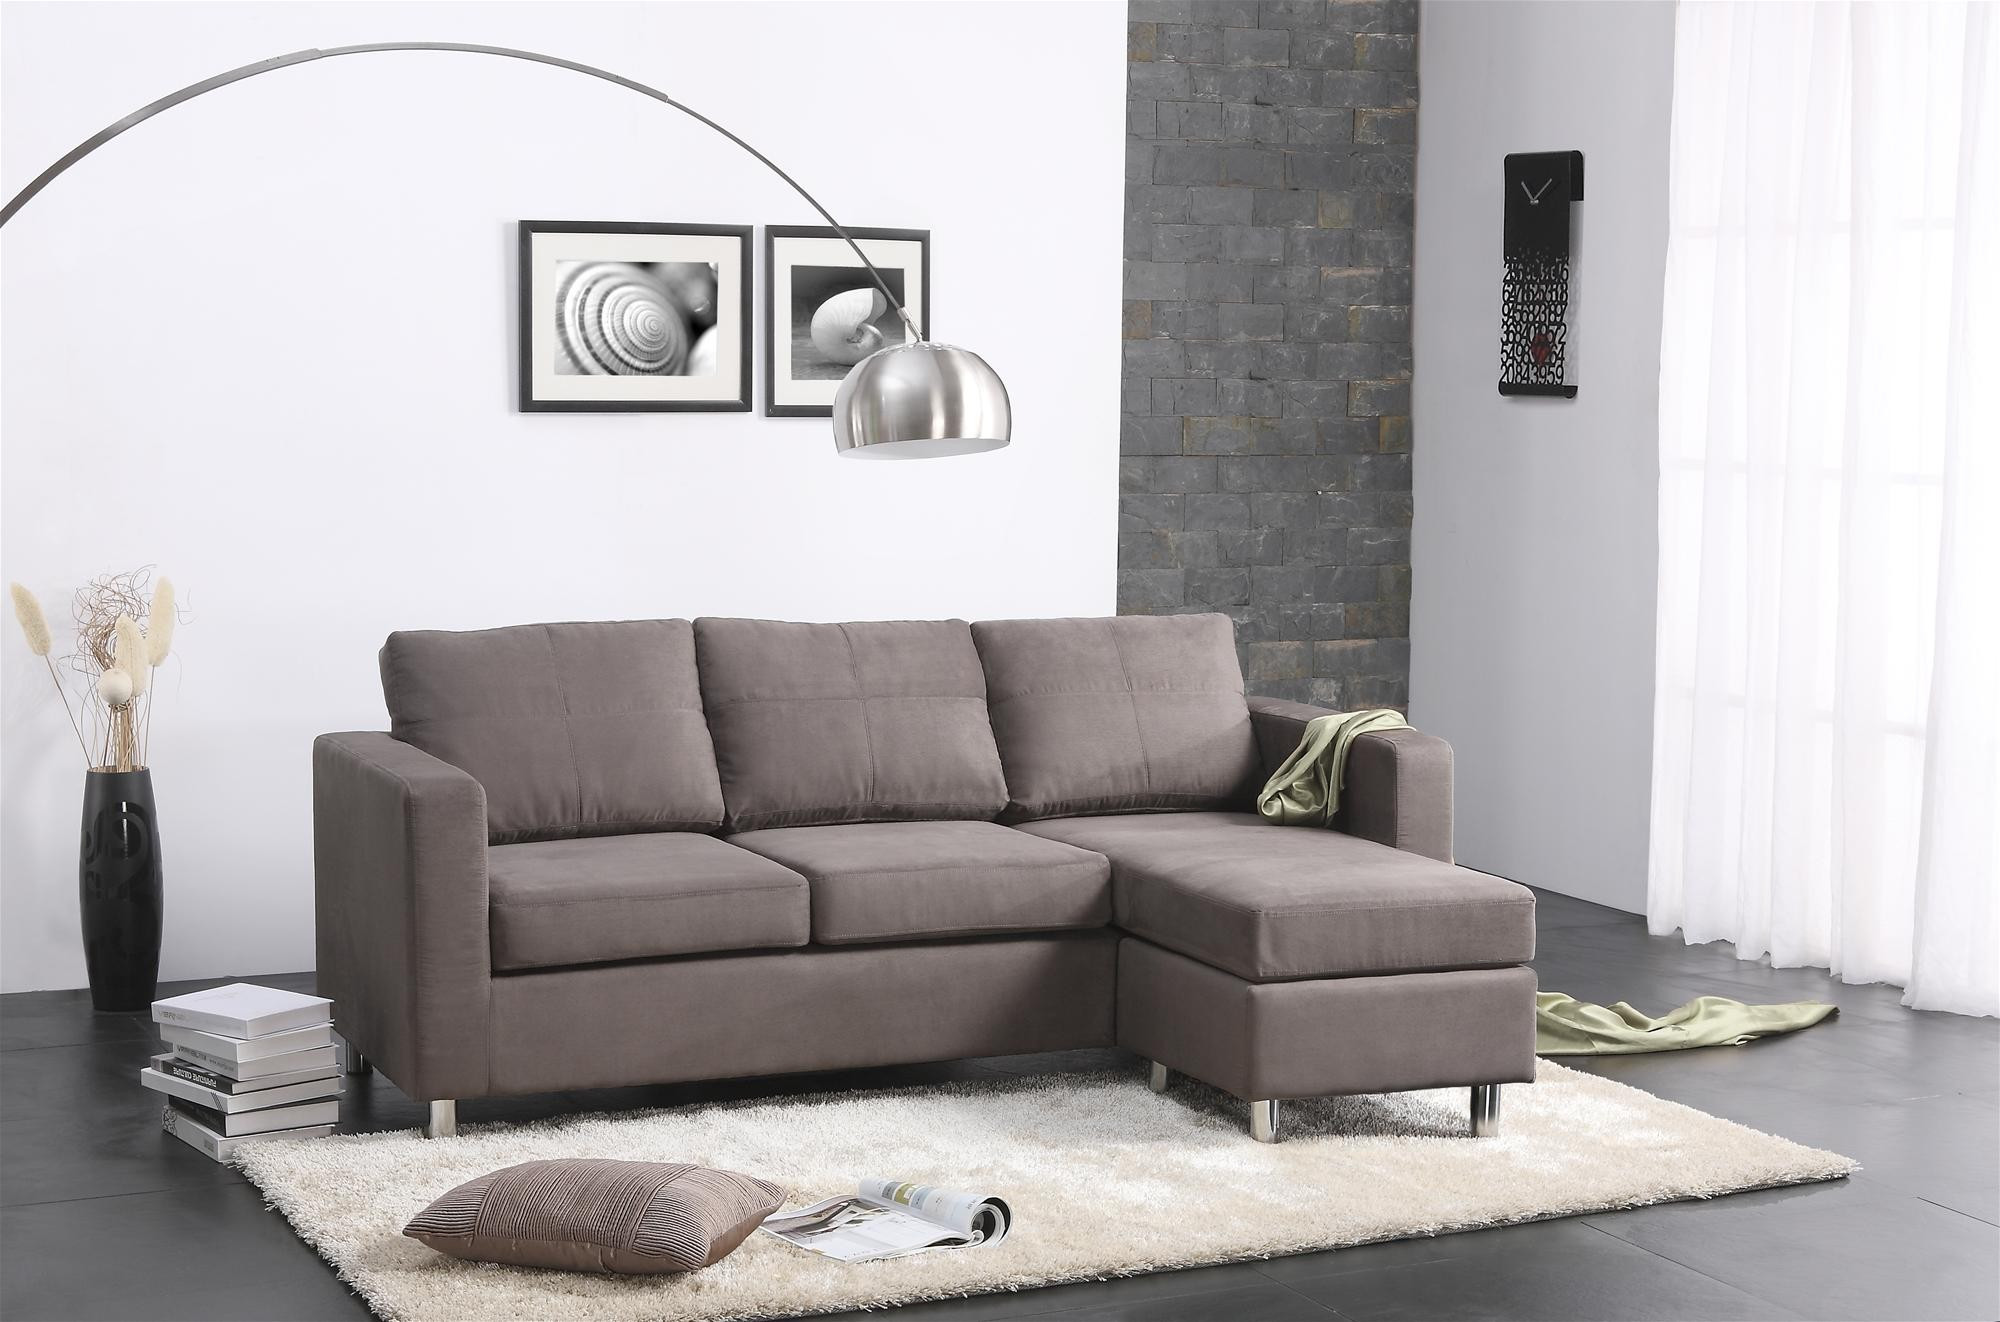 Best ideas about Sofa Bed Sectional . Save or Pin Living Room Leather And Wood Small Sectional Sofa Bed Now.